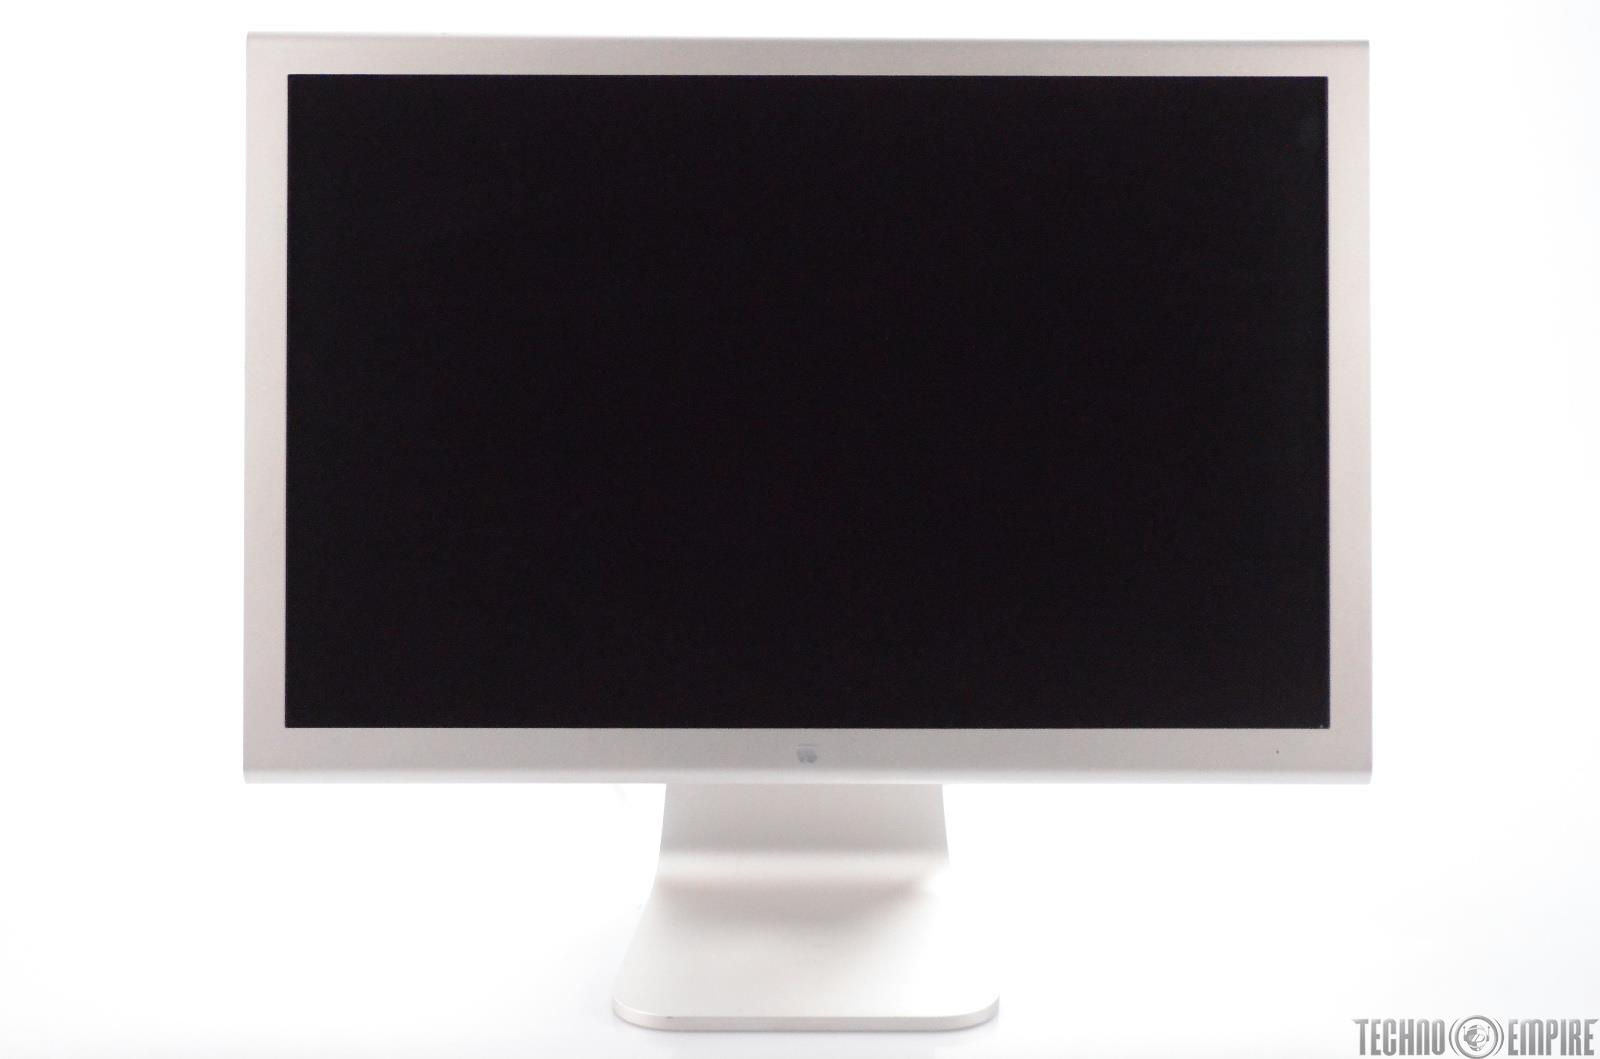 """Apple A1081 20"""" LCD Computer Monitor w/ iSight A1023 Webcam #31098"""